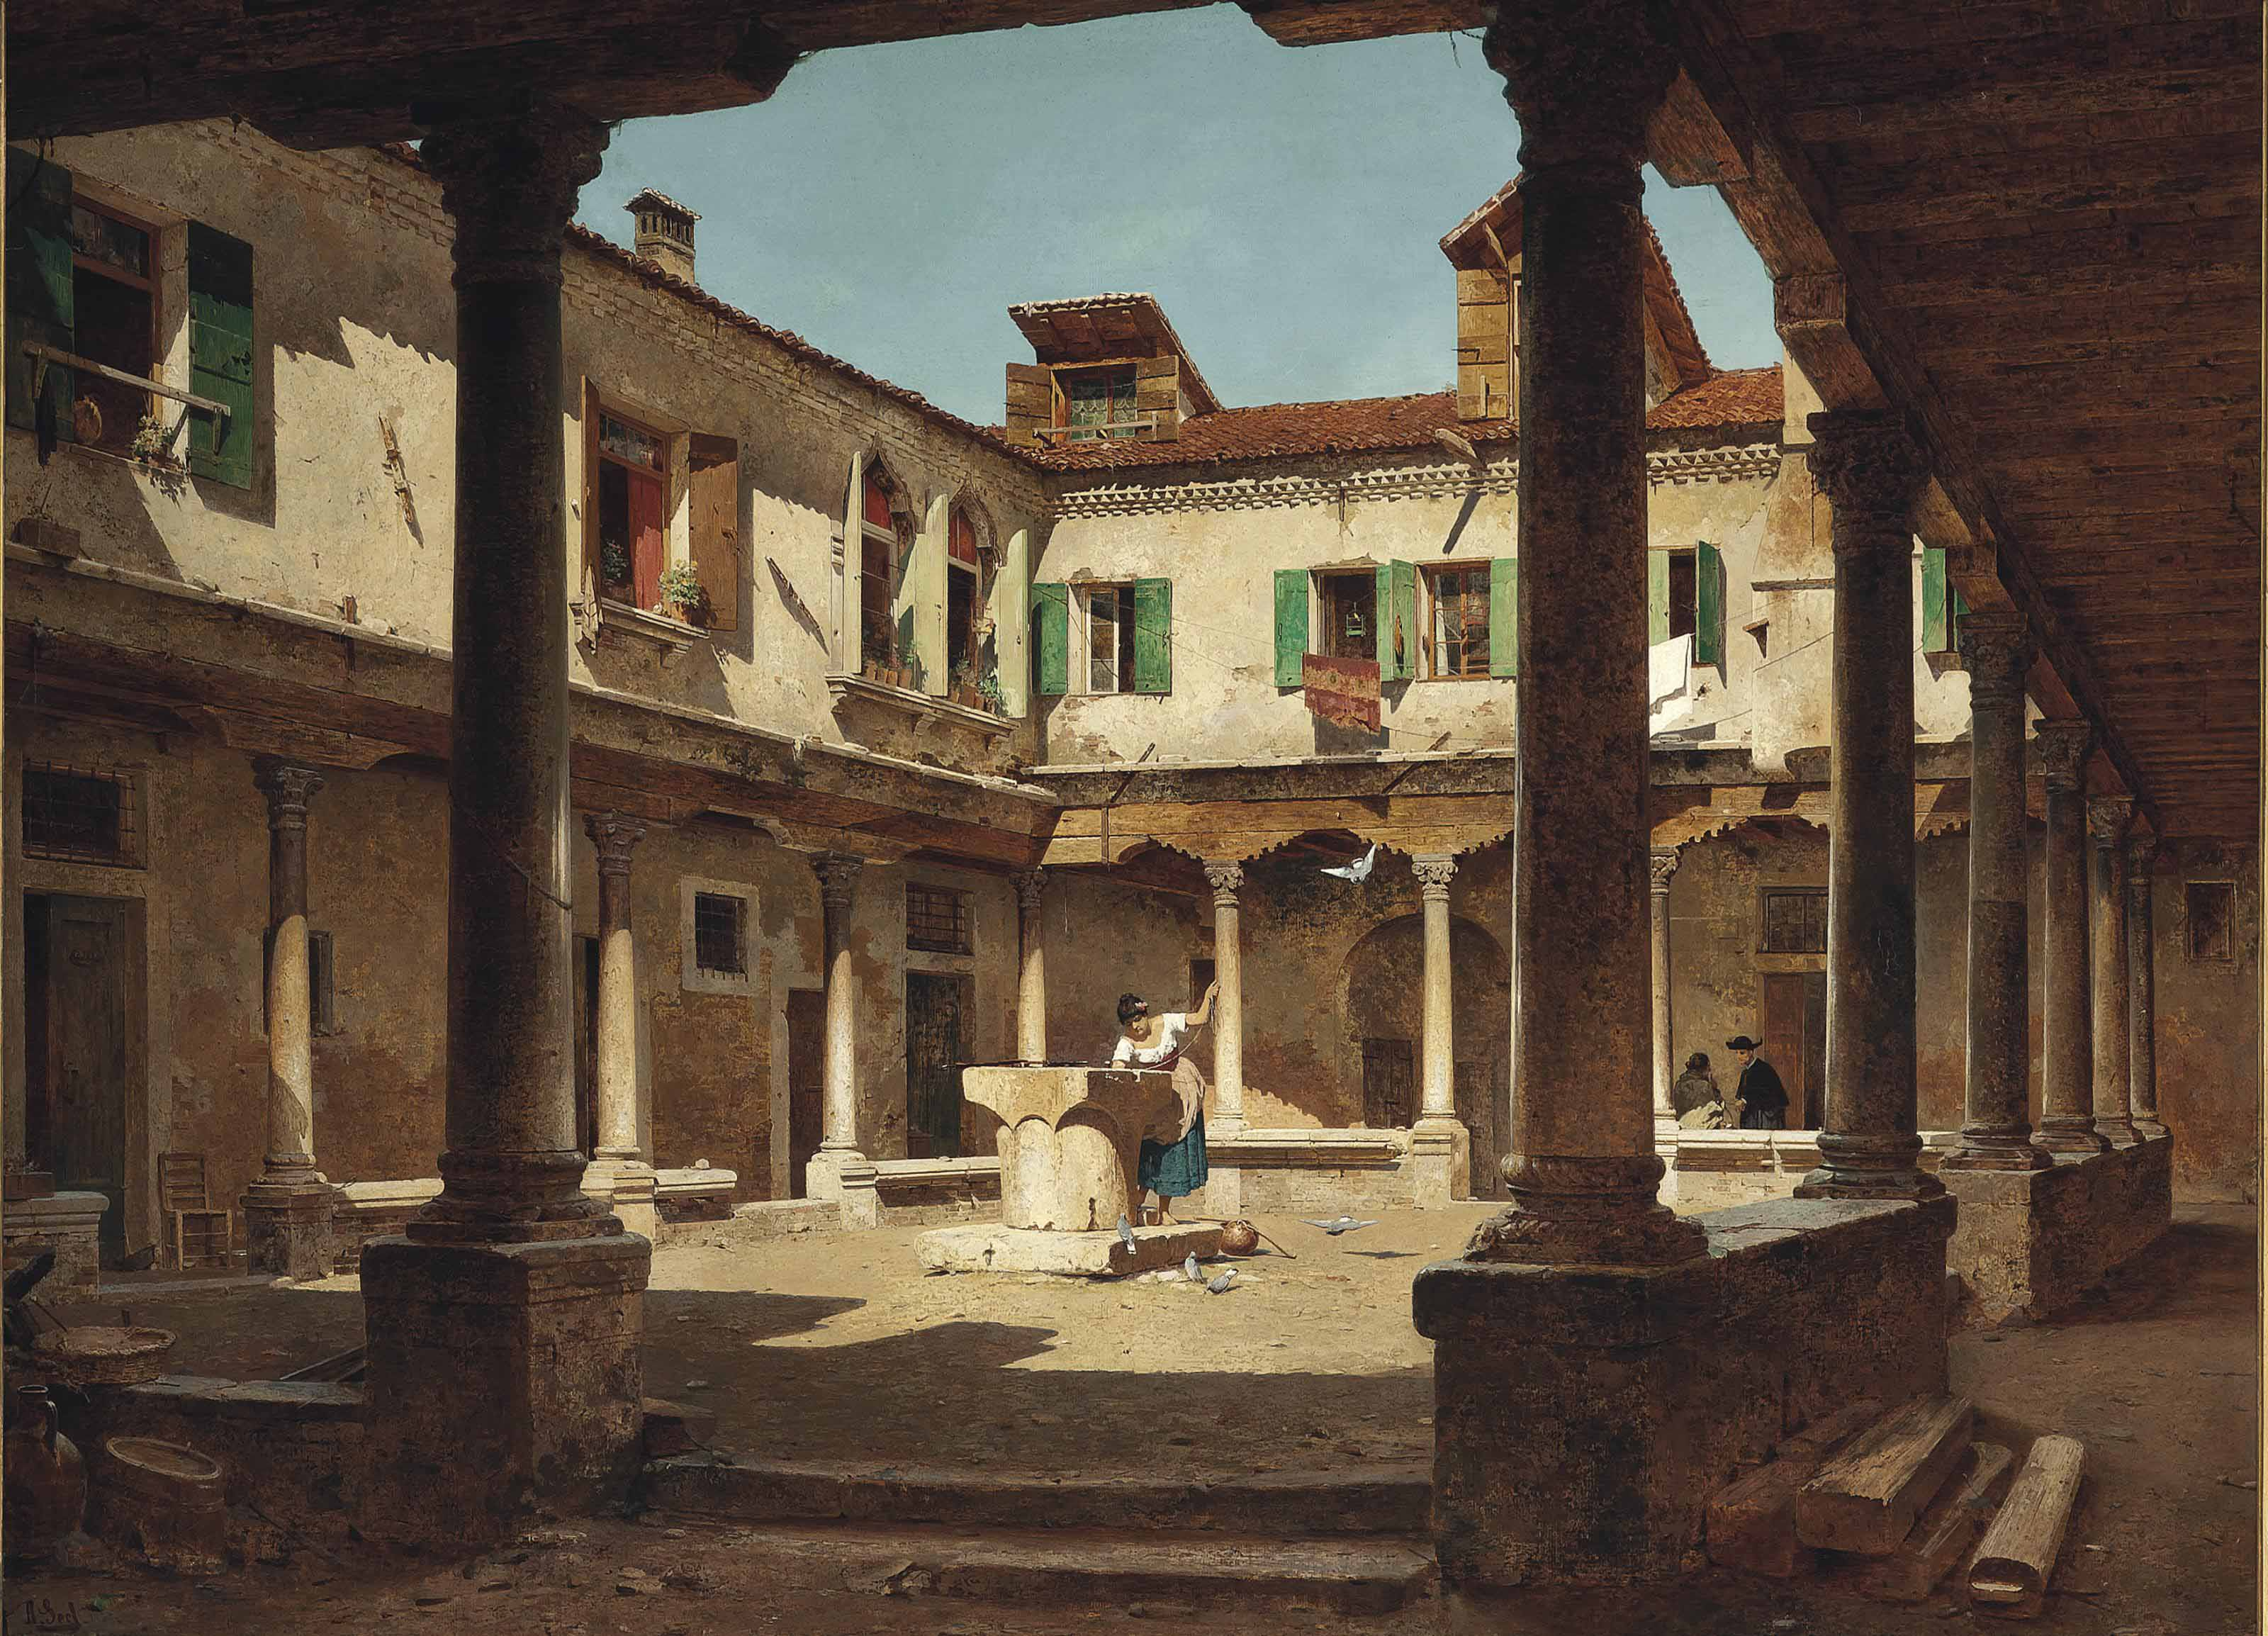 At a well in a sunlit courtyard